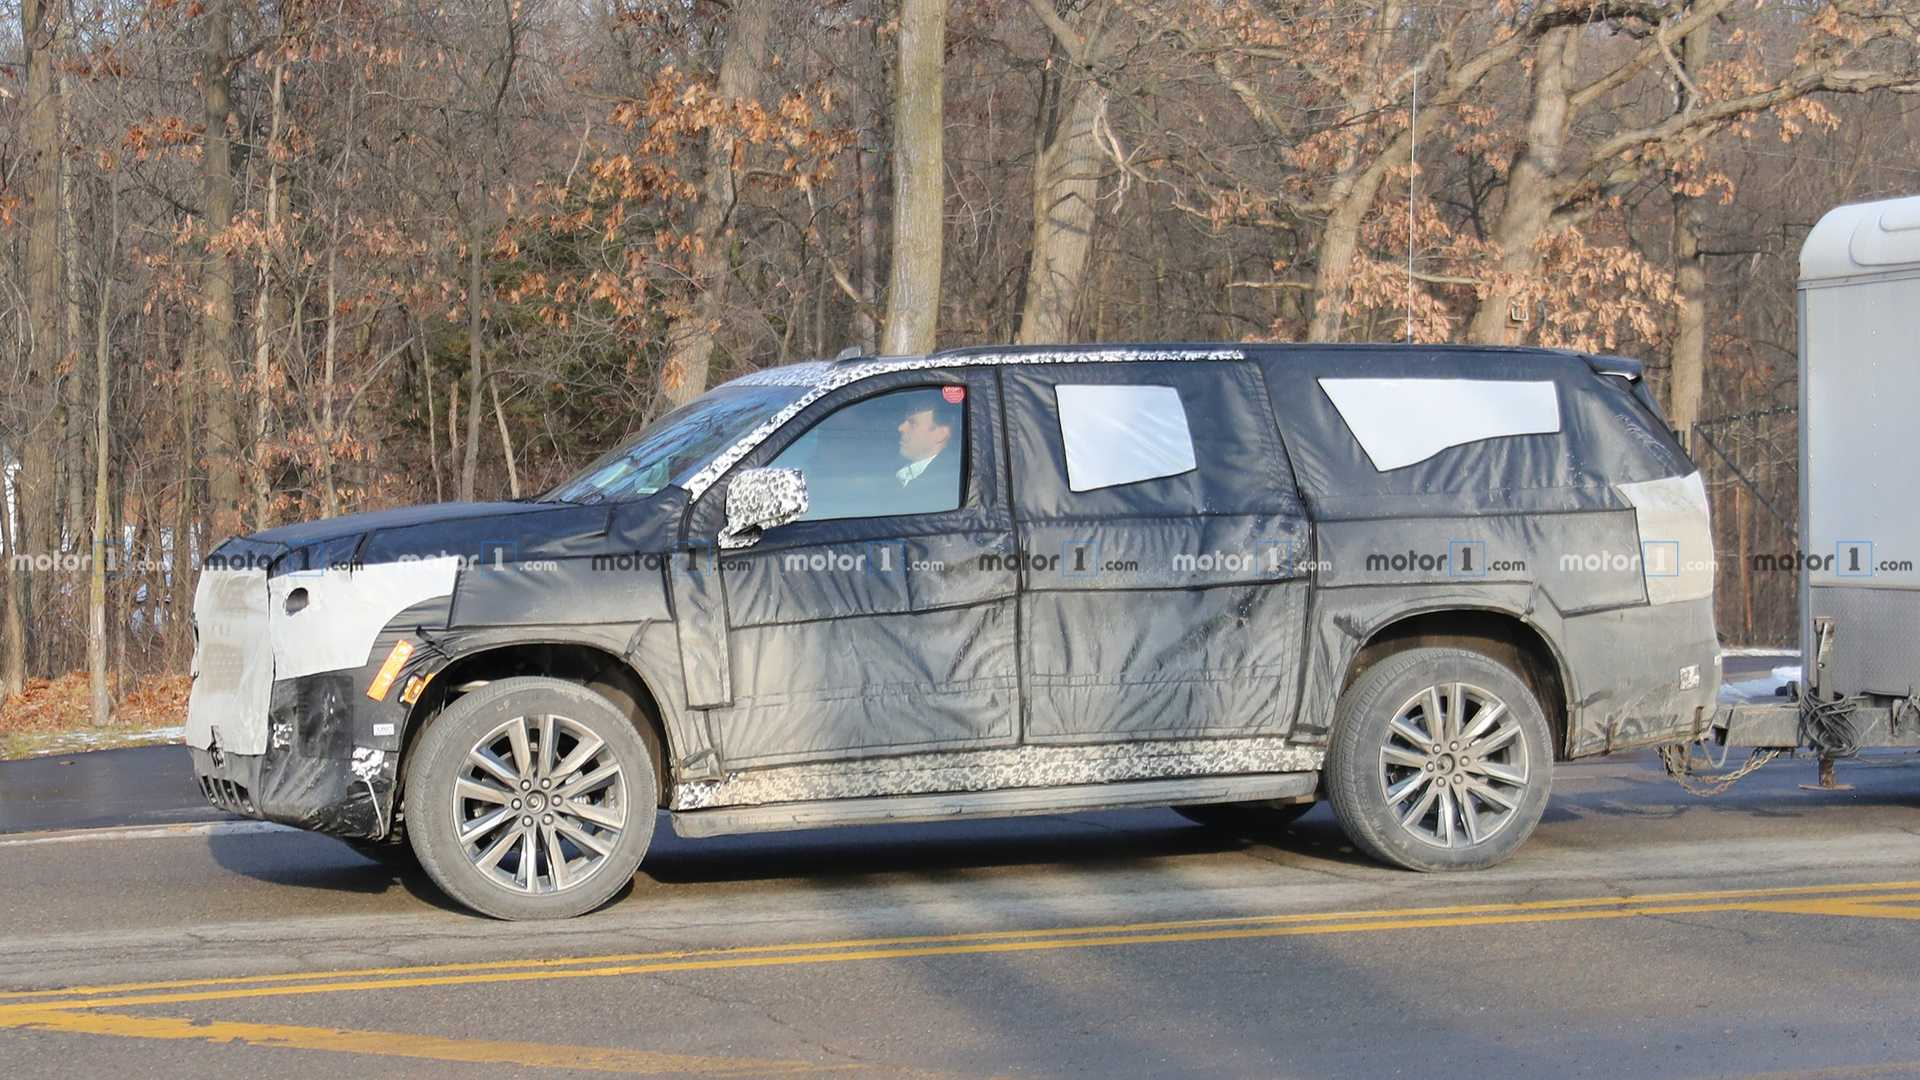 90 The Best 2020 Cadillac Escalade Ext Configurations